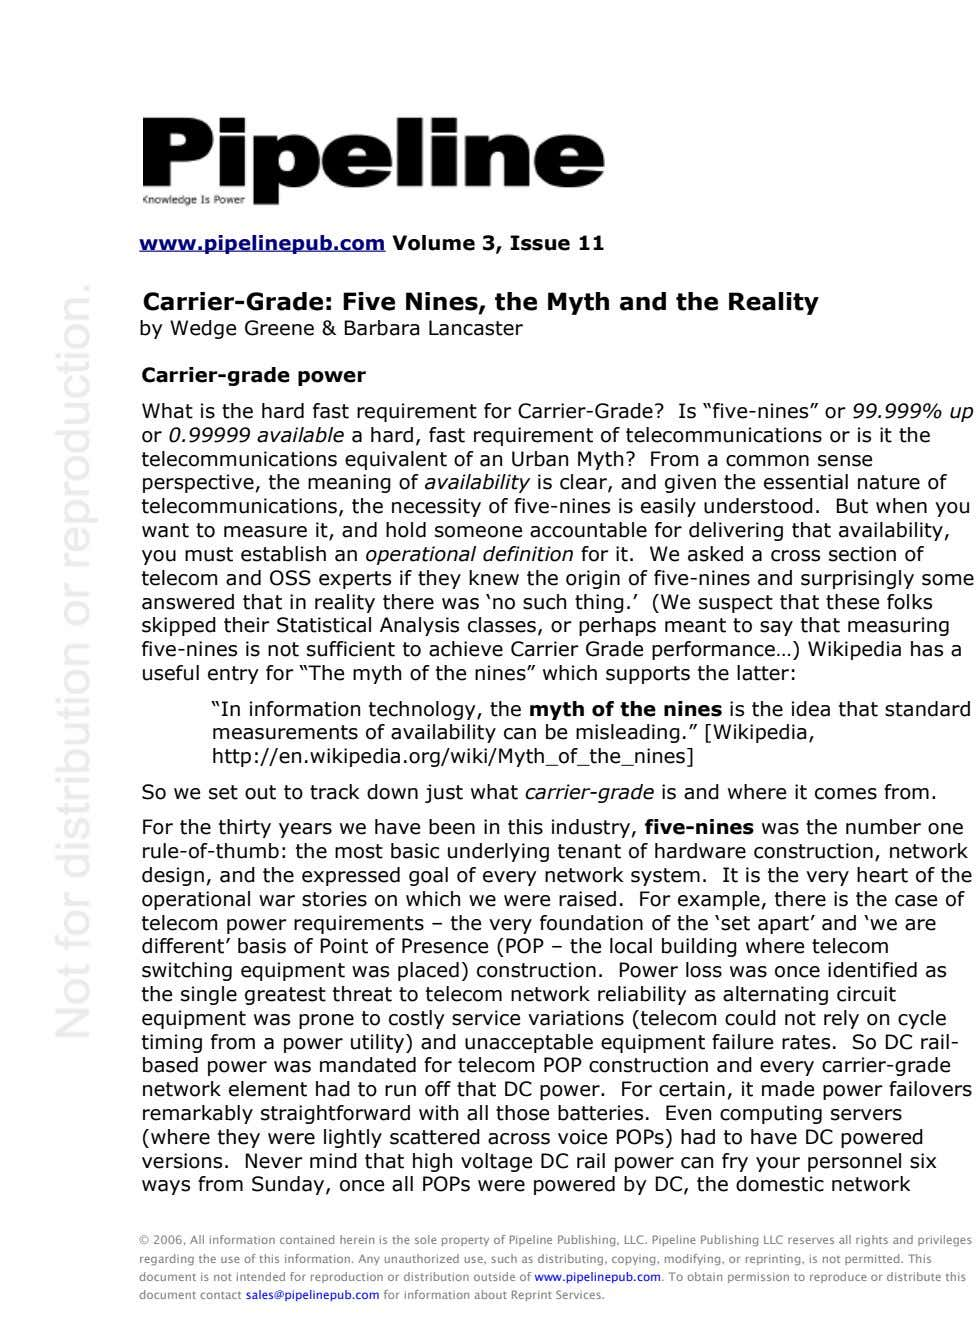 www.pipelinepub.com Volume 3, Issue 11 Carrier-Grade: Five Nines, the Myth and the Reality by Wedge